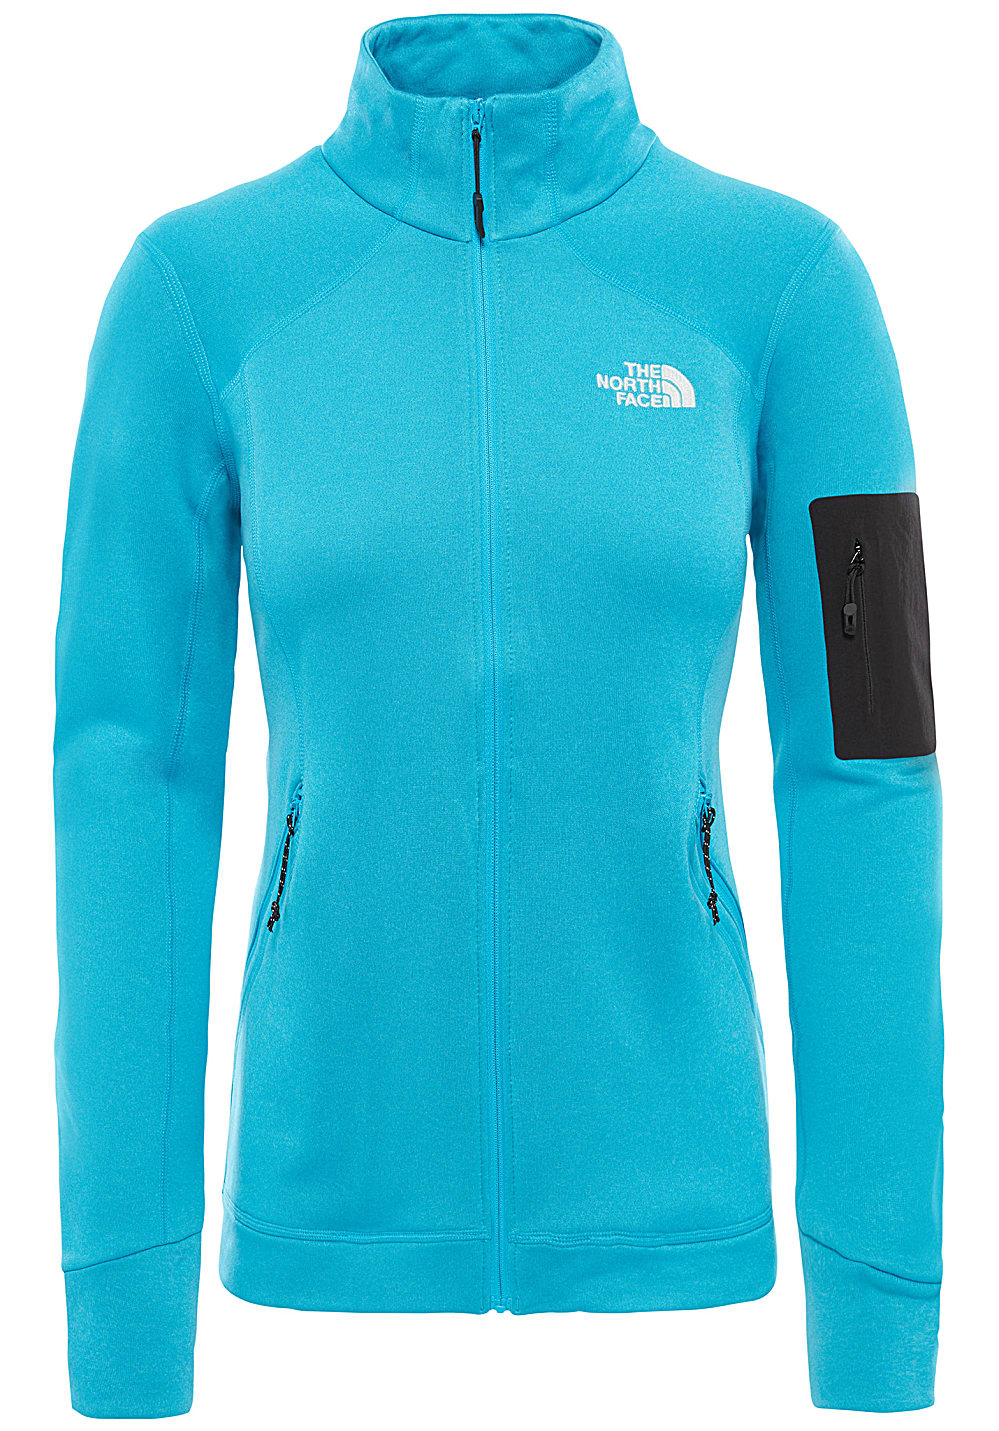 bb0dacc11 THE NORTH FACE Impendor Power Dry - Fleece Jacket for Women - Blue